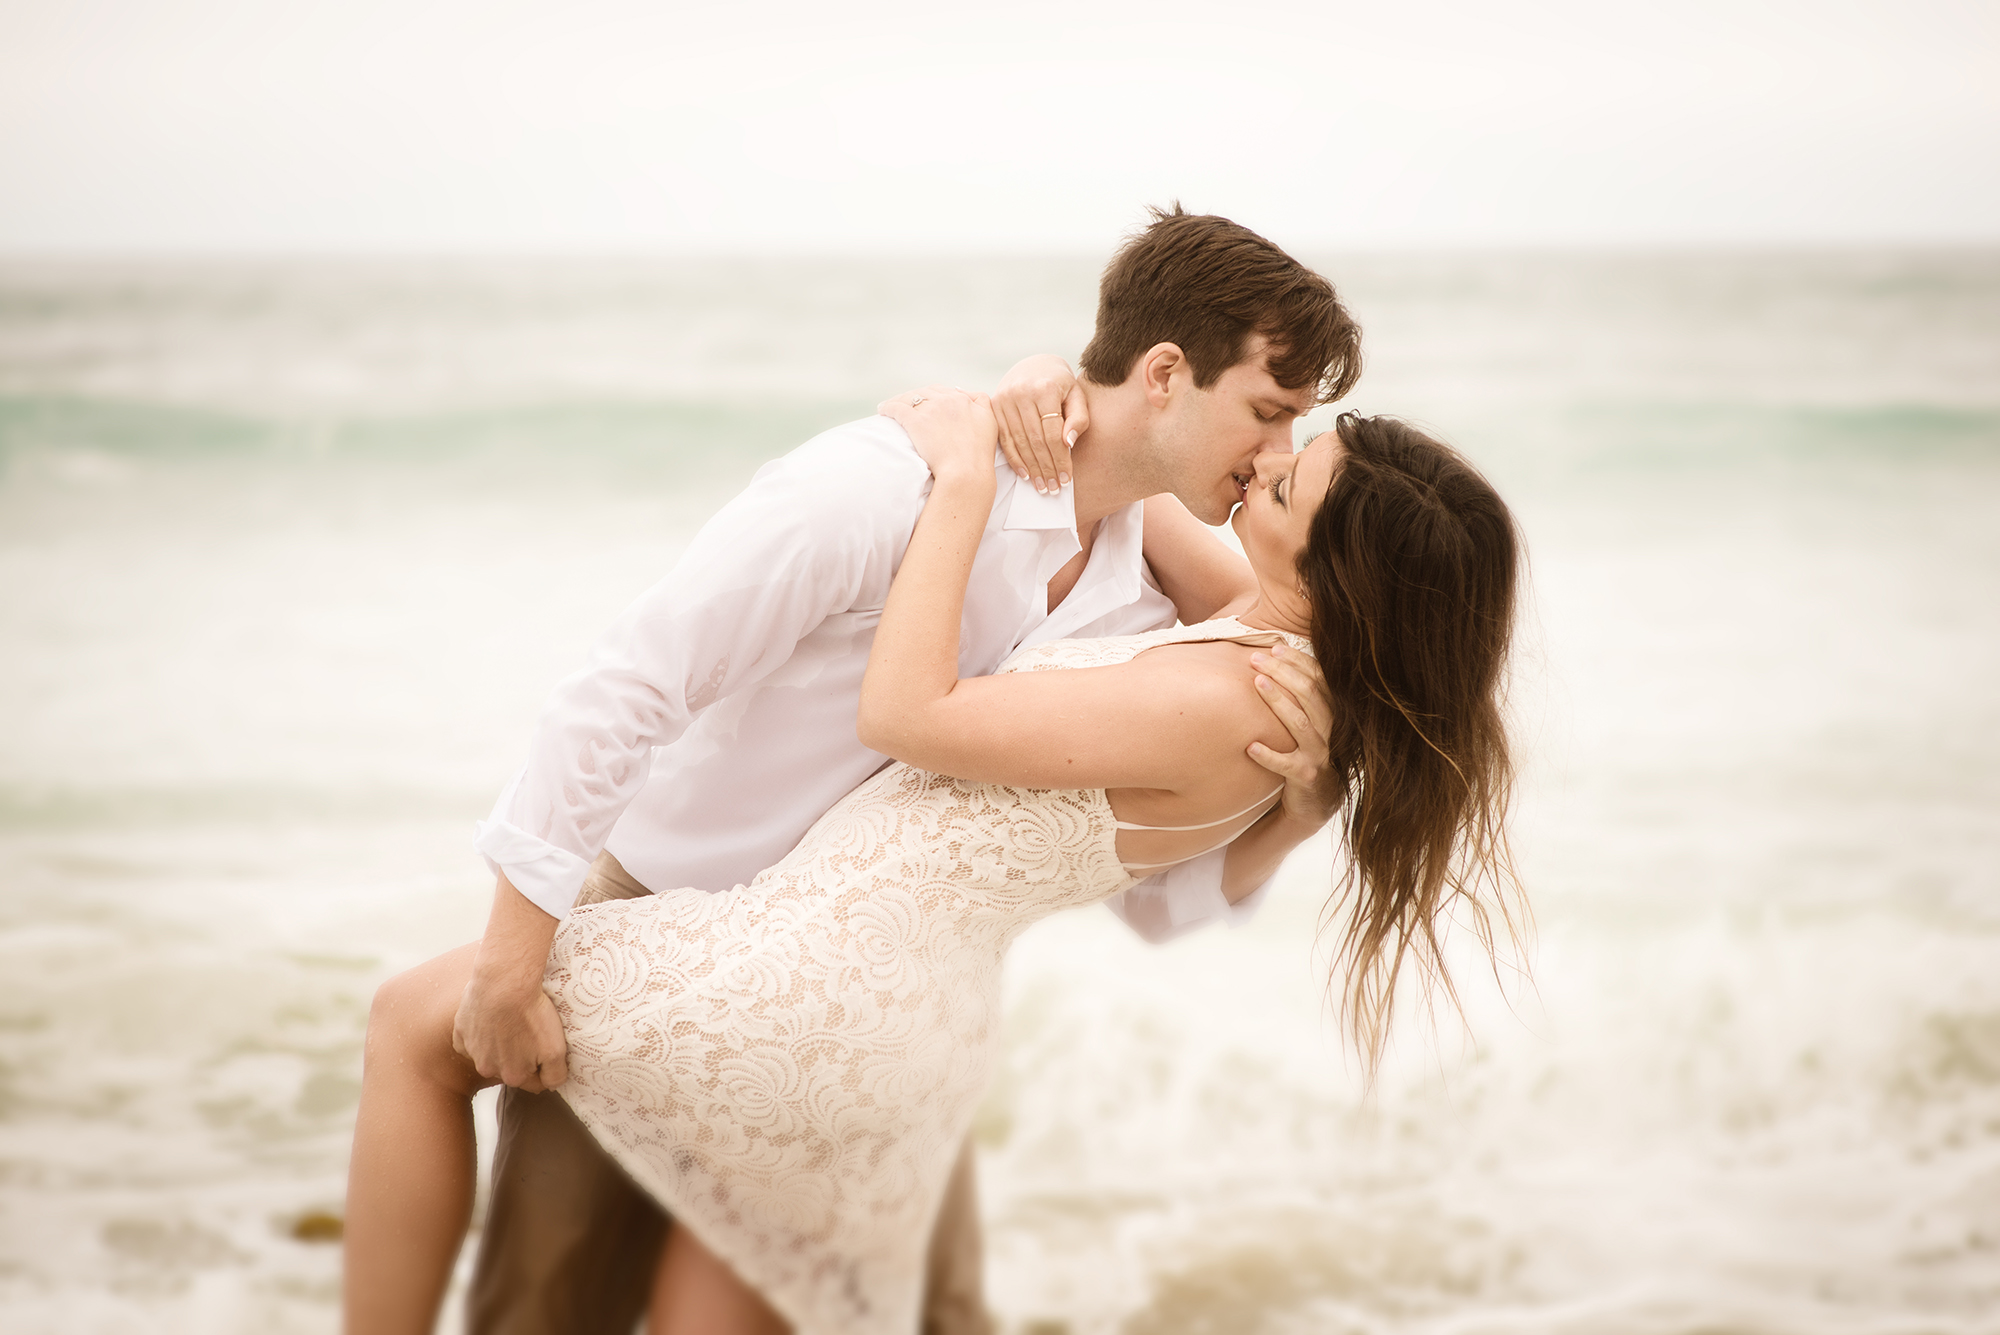 andrew and alessia, beach engagement, malibu